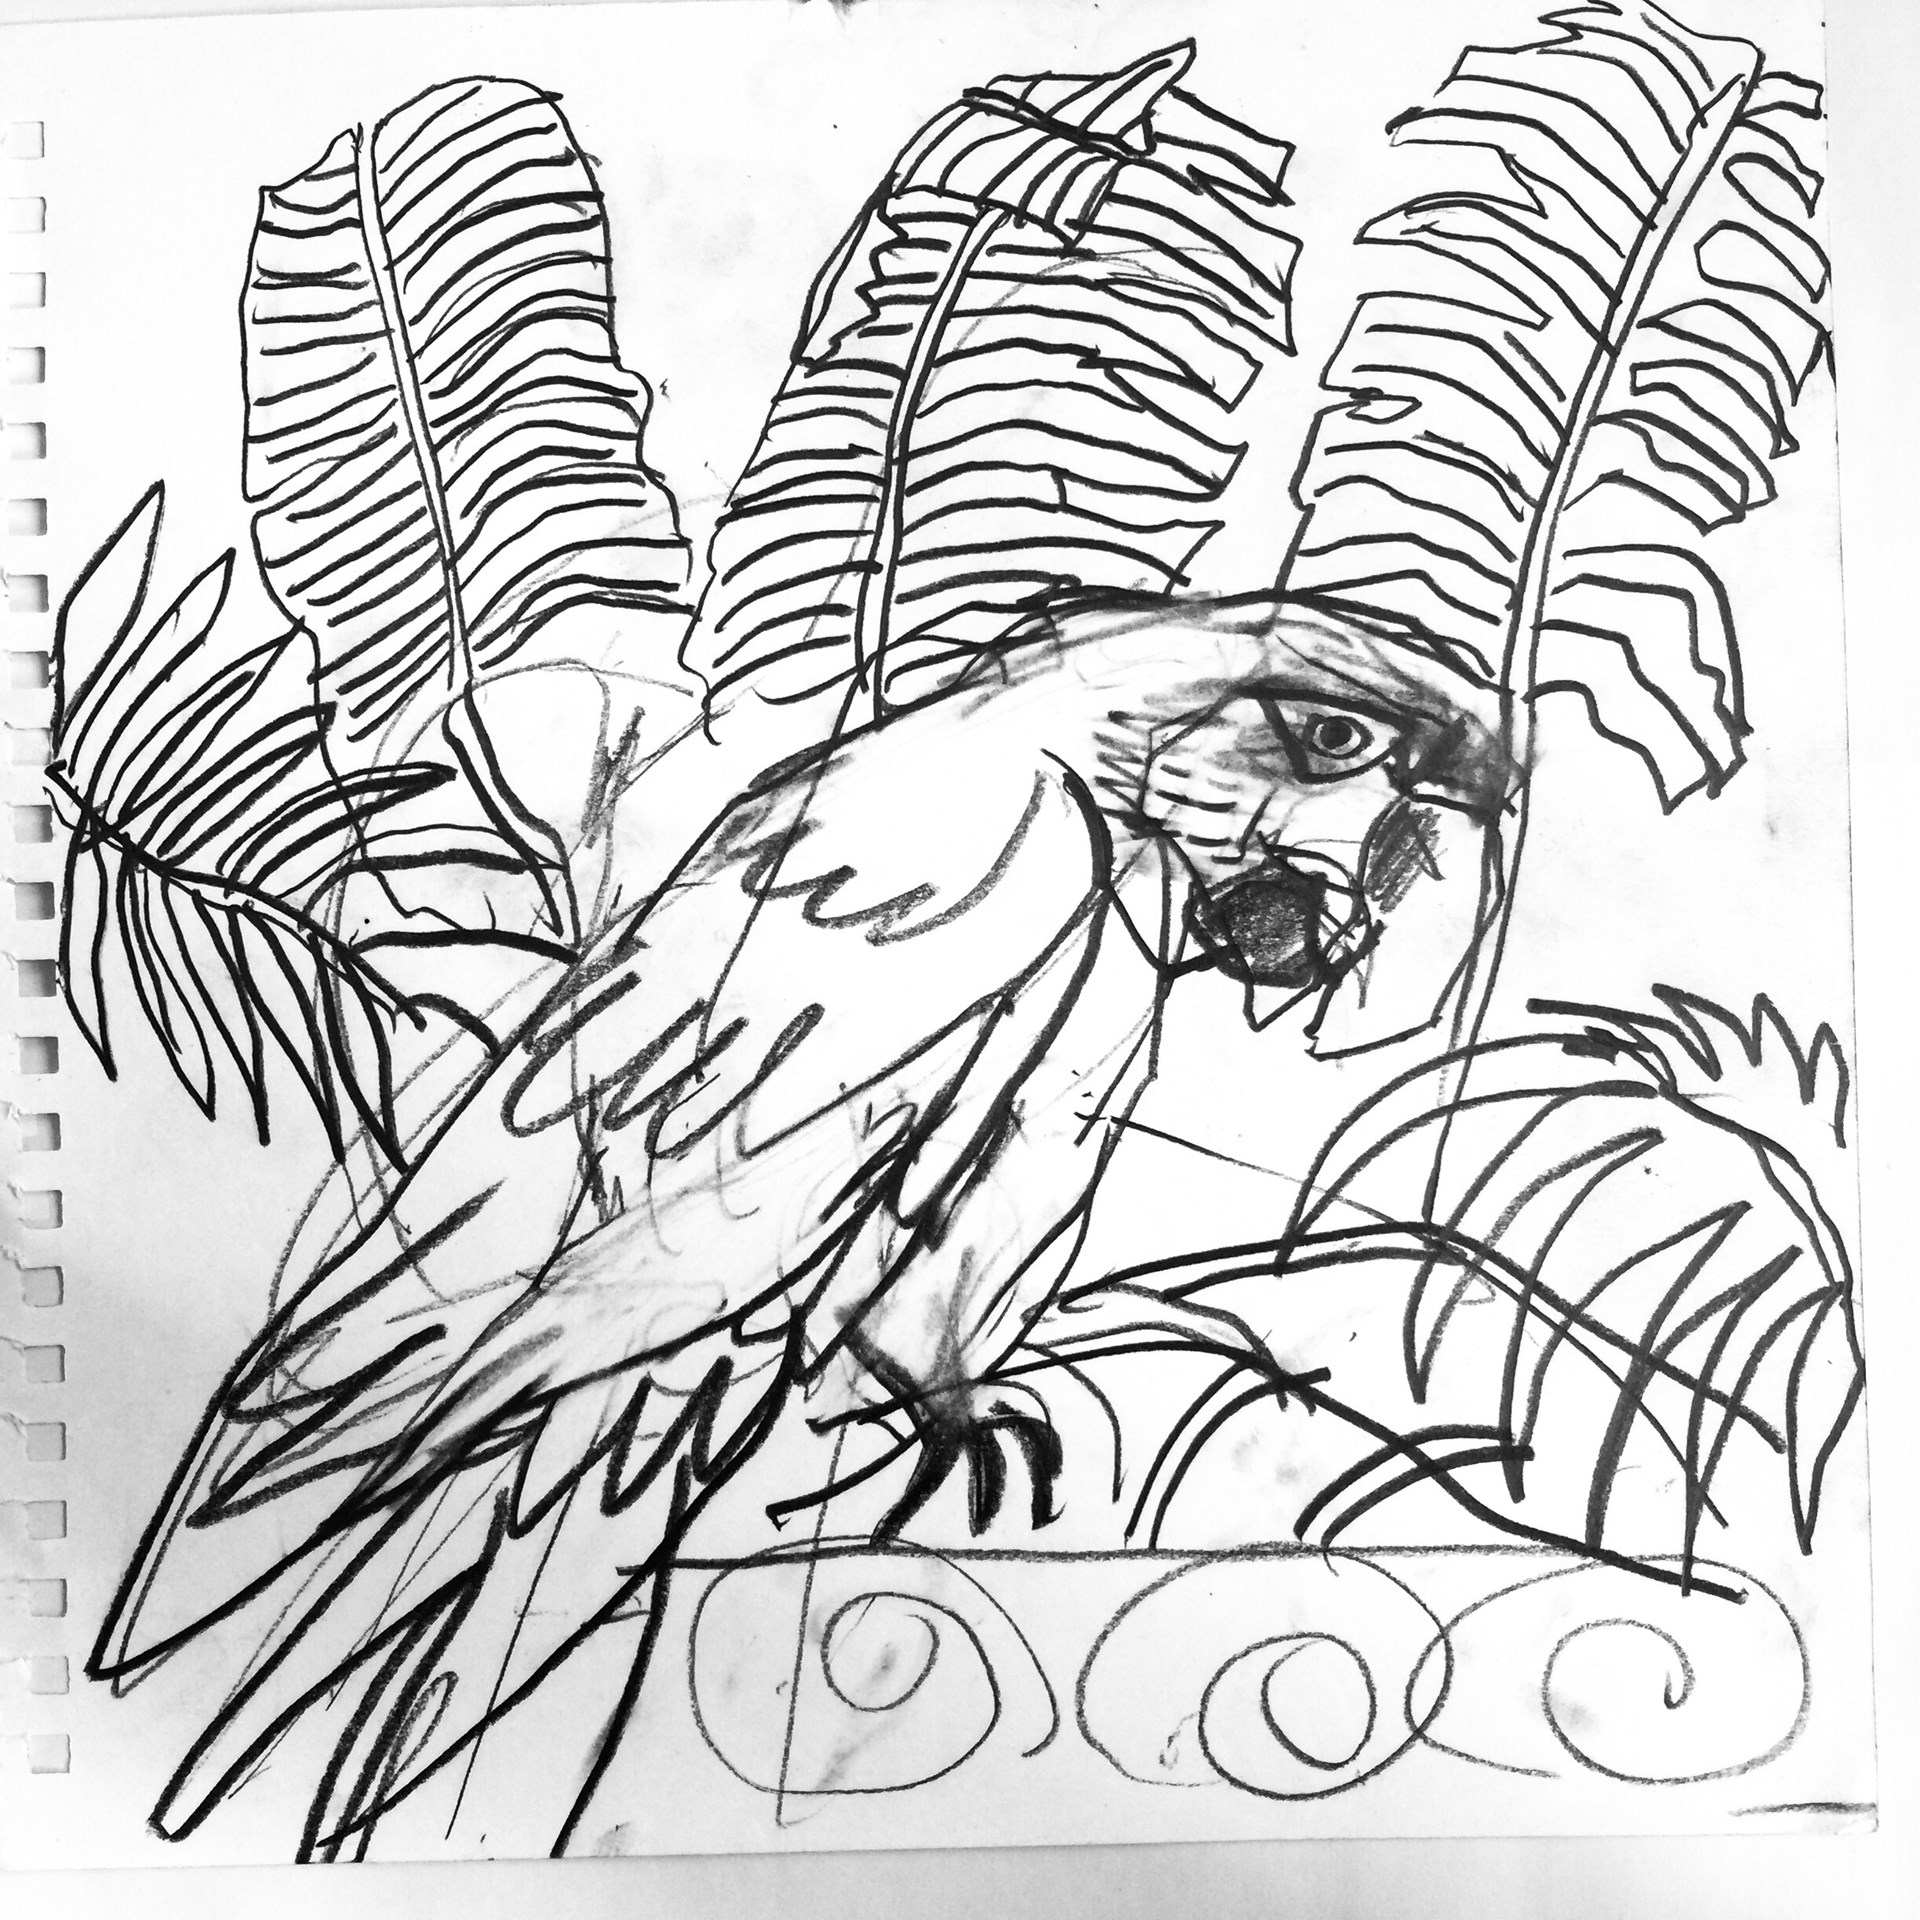 1920x1920 Original Pencil Drawings, Sketches Of Birds, Tropical Flowers